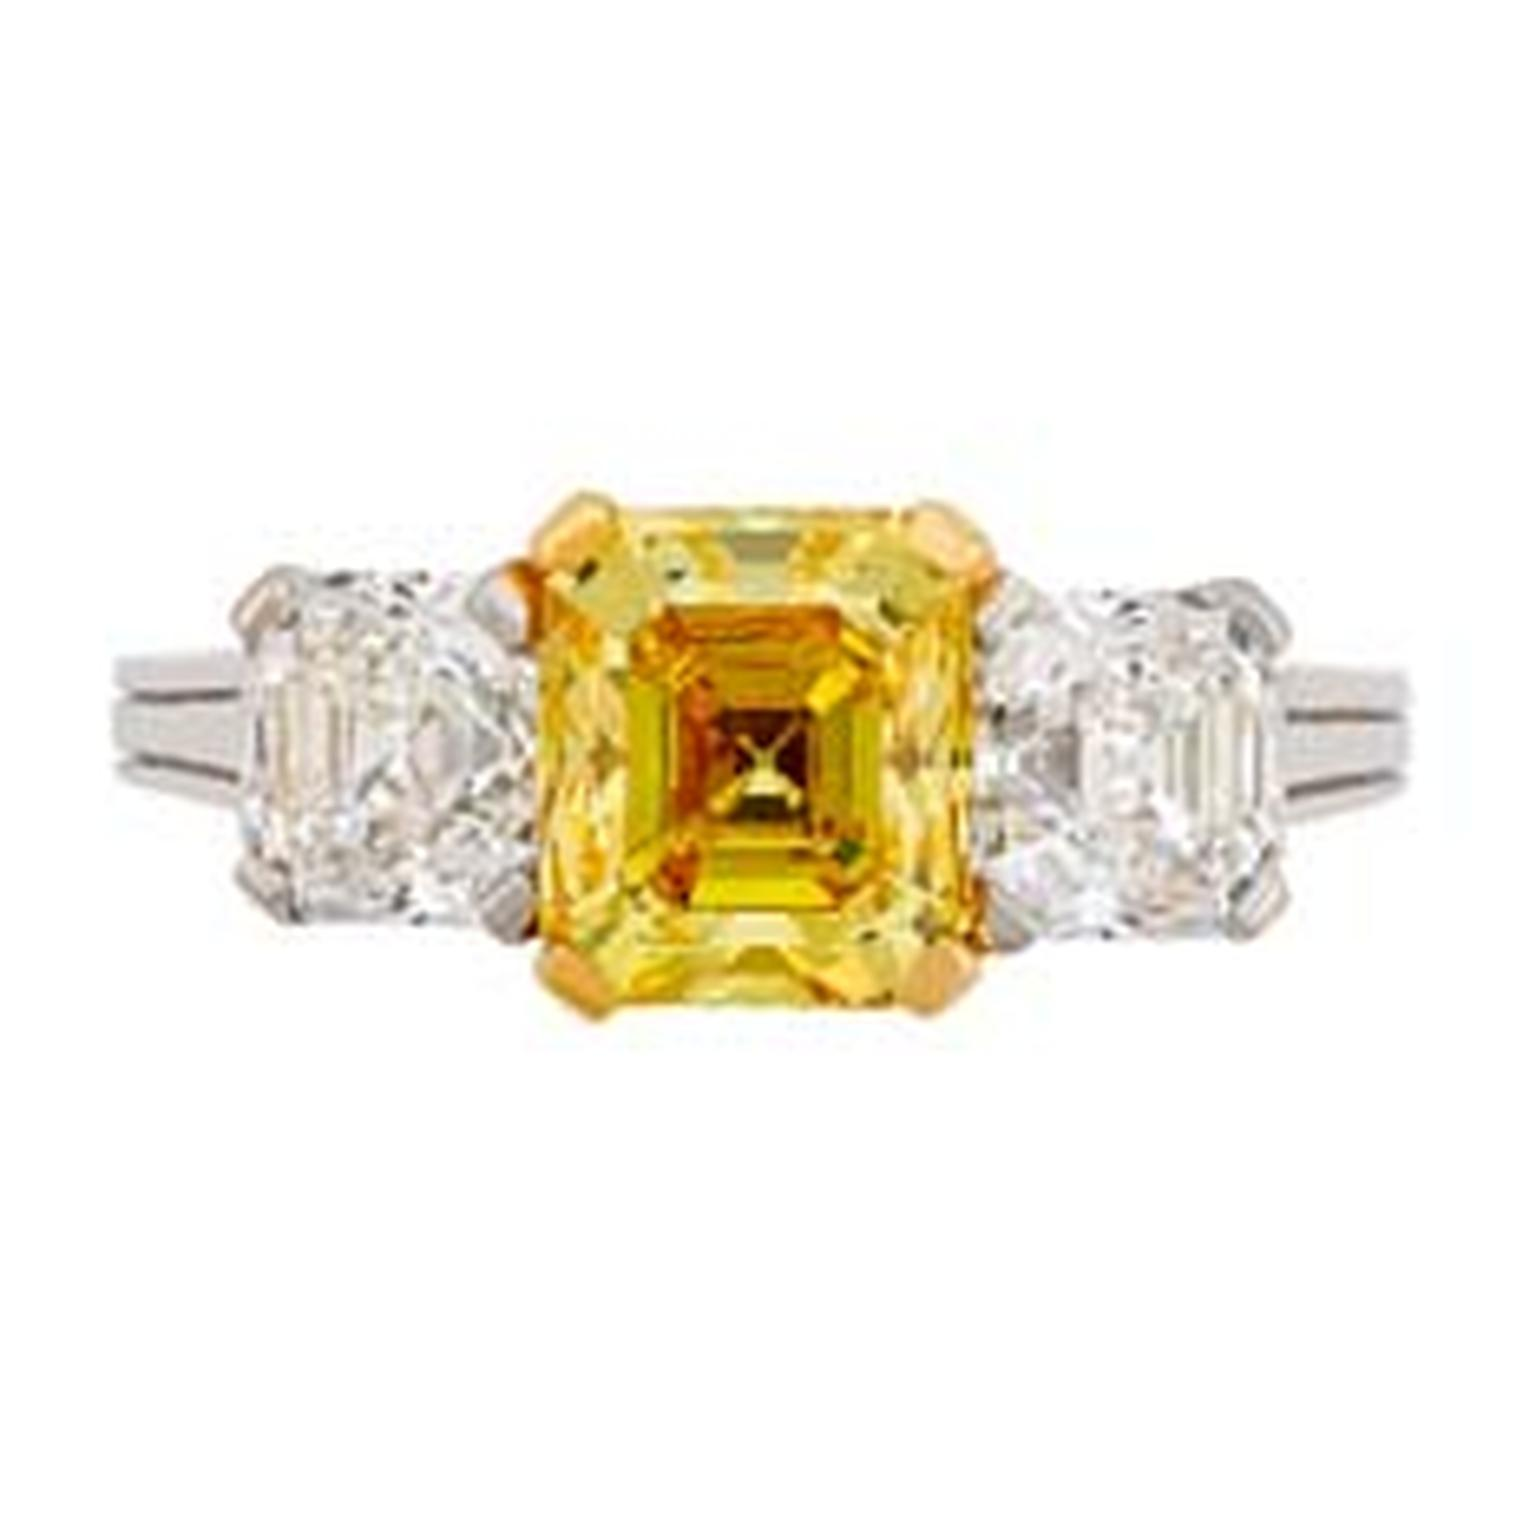 Hancocks Three stone yellow and white diamond engagement ring